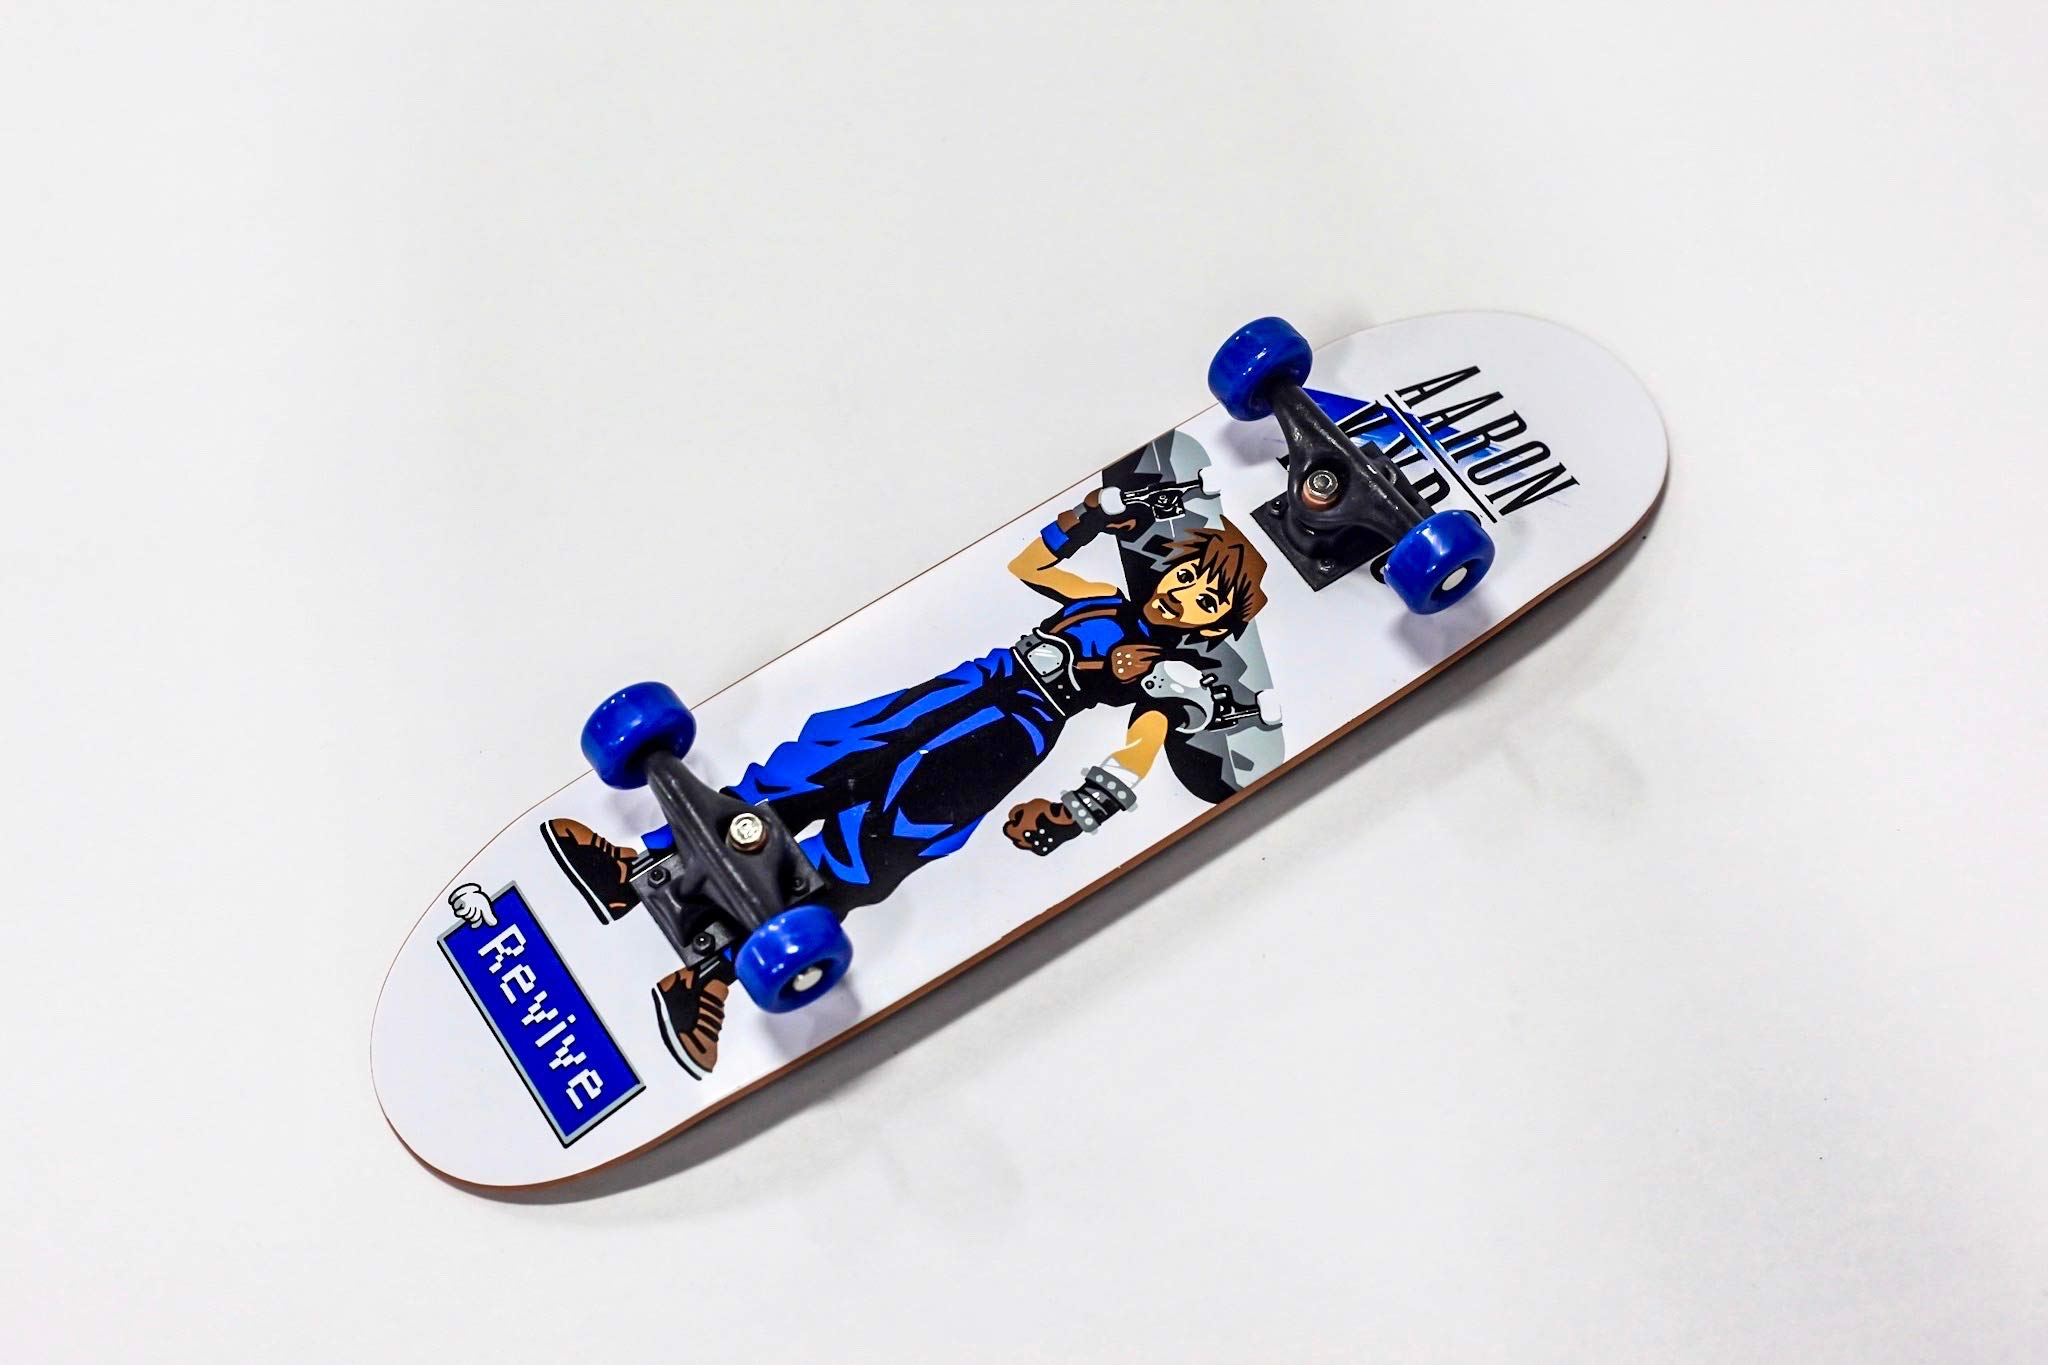 Braille Skateboarding Aaron Kyro Warrior Mini 11inch Professional Hand Board. Toy Skateboard Comes with Wheels, Trucks, Hardware and Tools. Real Griptape. by Braille Skateboarding